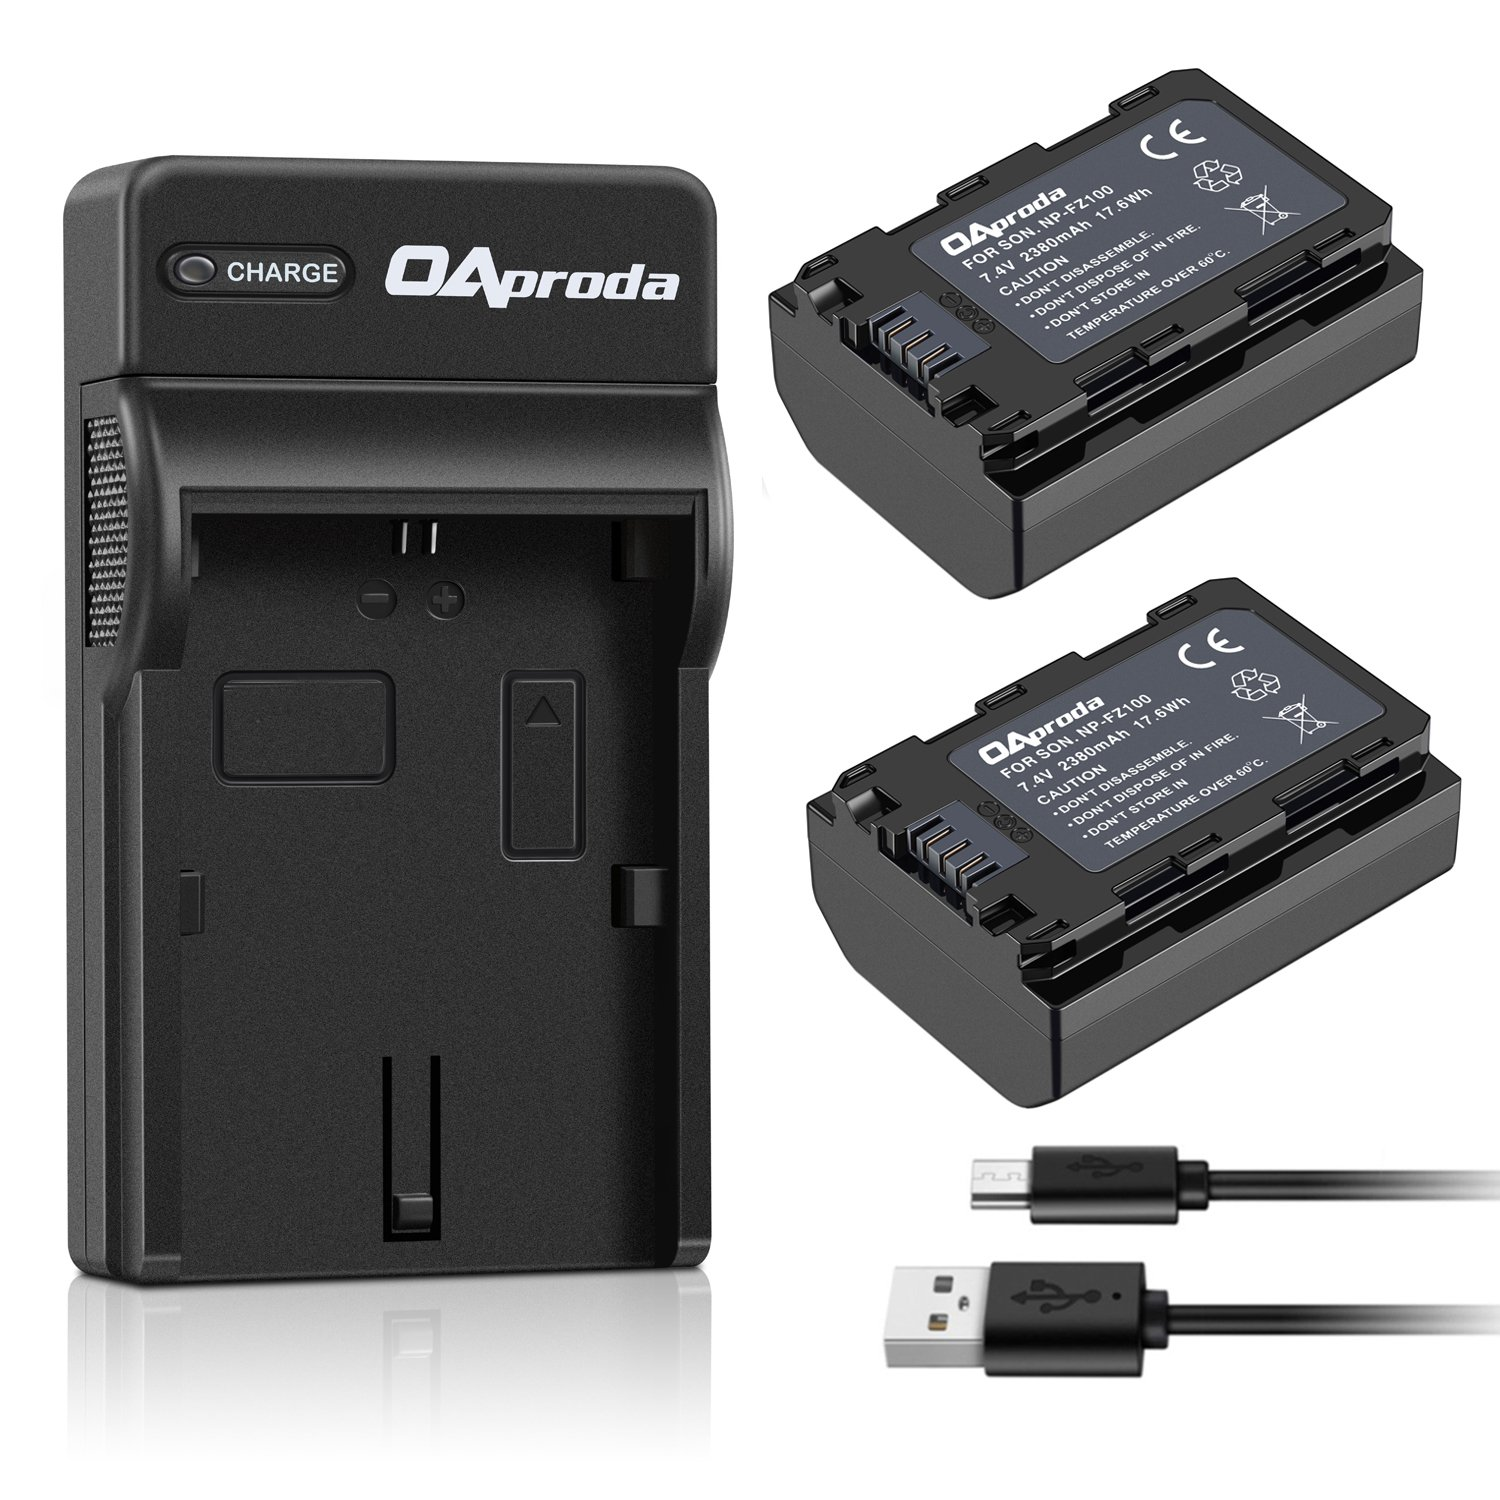 OAproda 2 Pack NP-FZ100 Battery and Rapid Micro USB Battery Charger for Sony NP-FZ100, BC-QZ1, Alpha A7 III, A7R III, A9, Sony Alpha 9, A7R3 Digital Camera (Fully Decoded, 7.4V, 2380mAh)